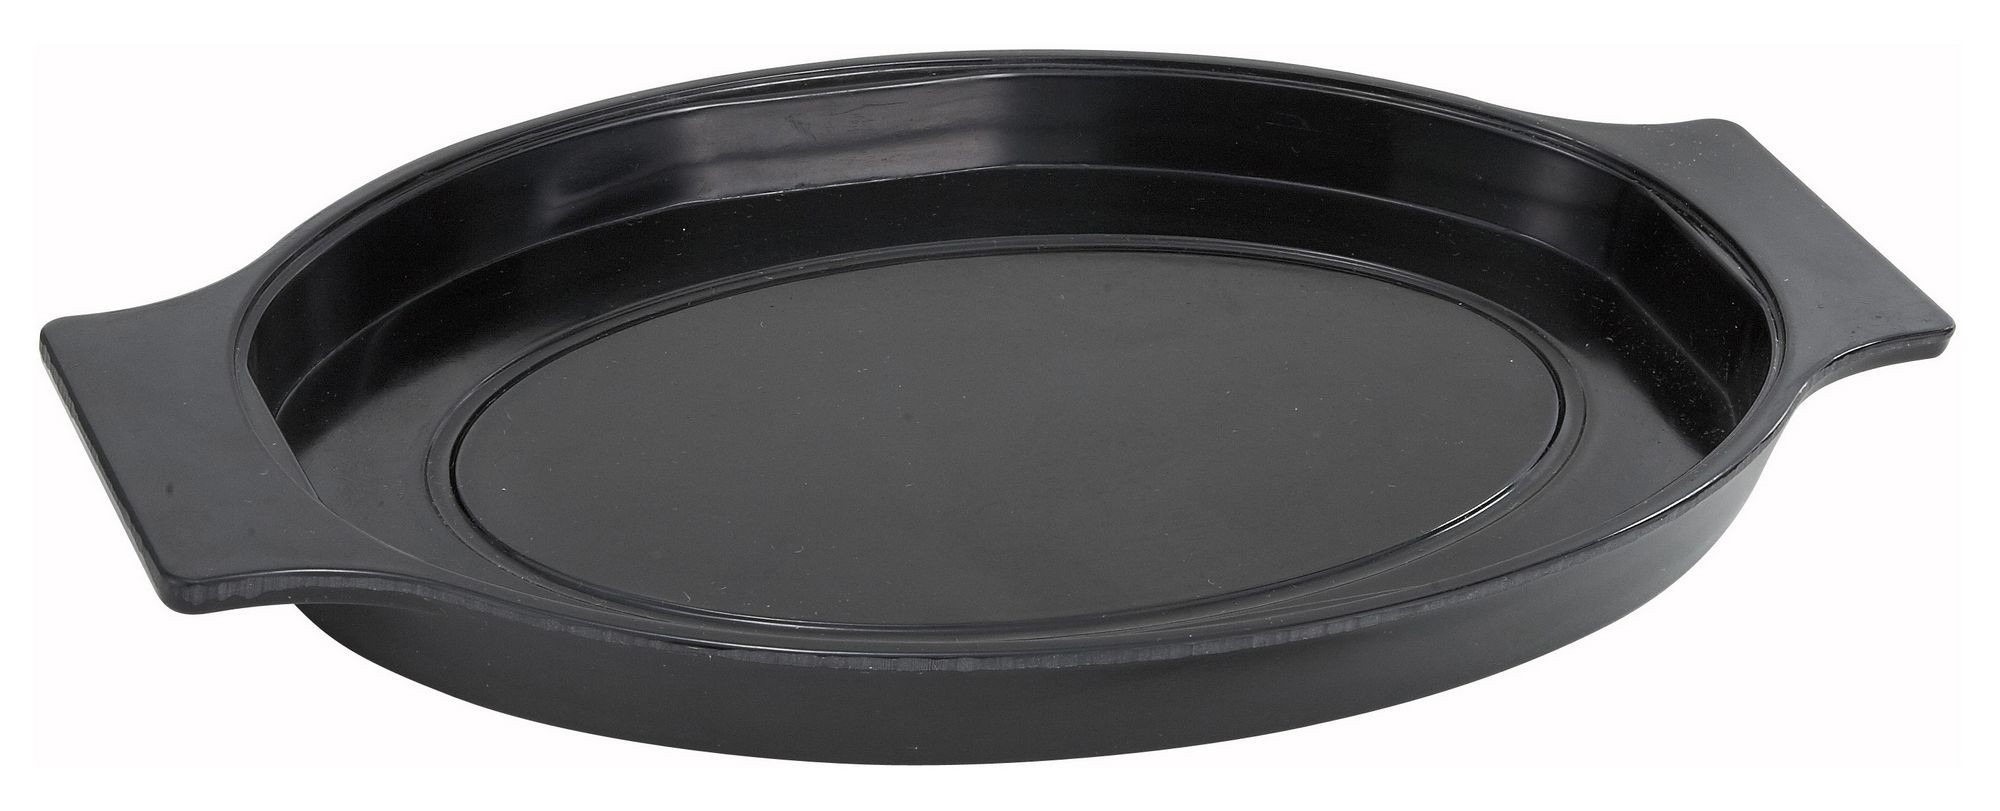 Winco SWU-11 Oval Underliner for Stainless Steel Sizzling Platter